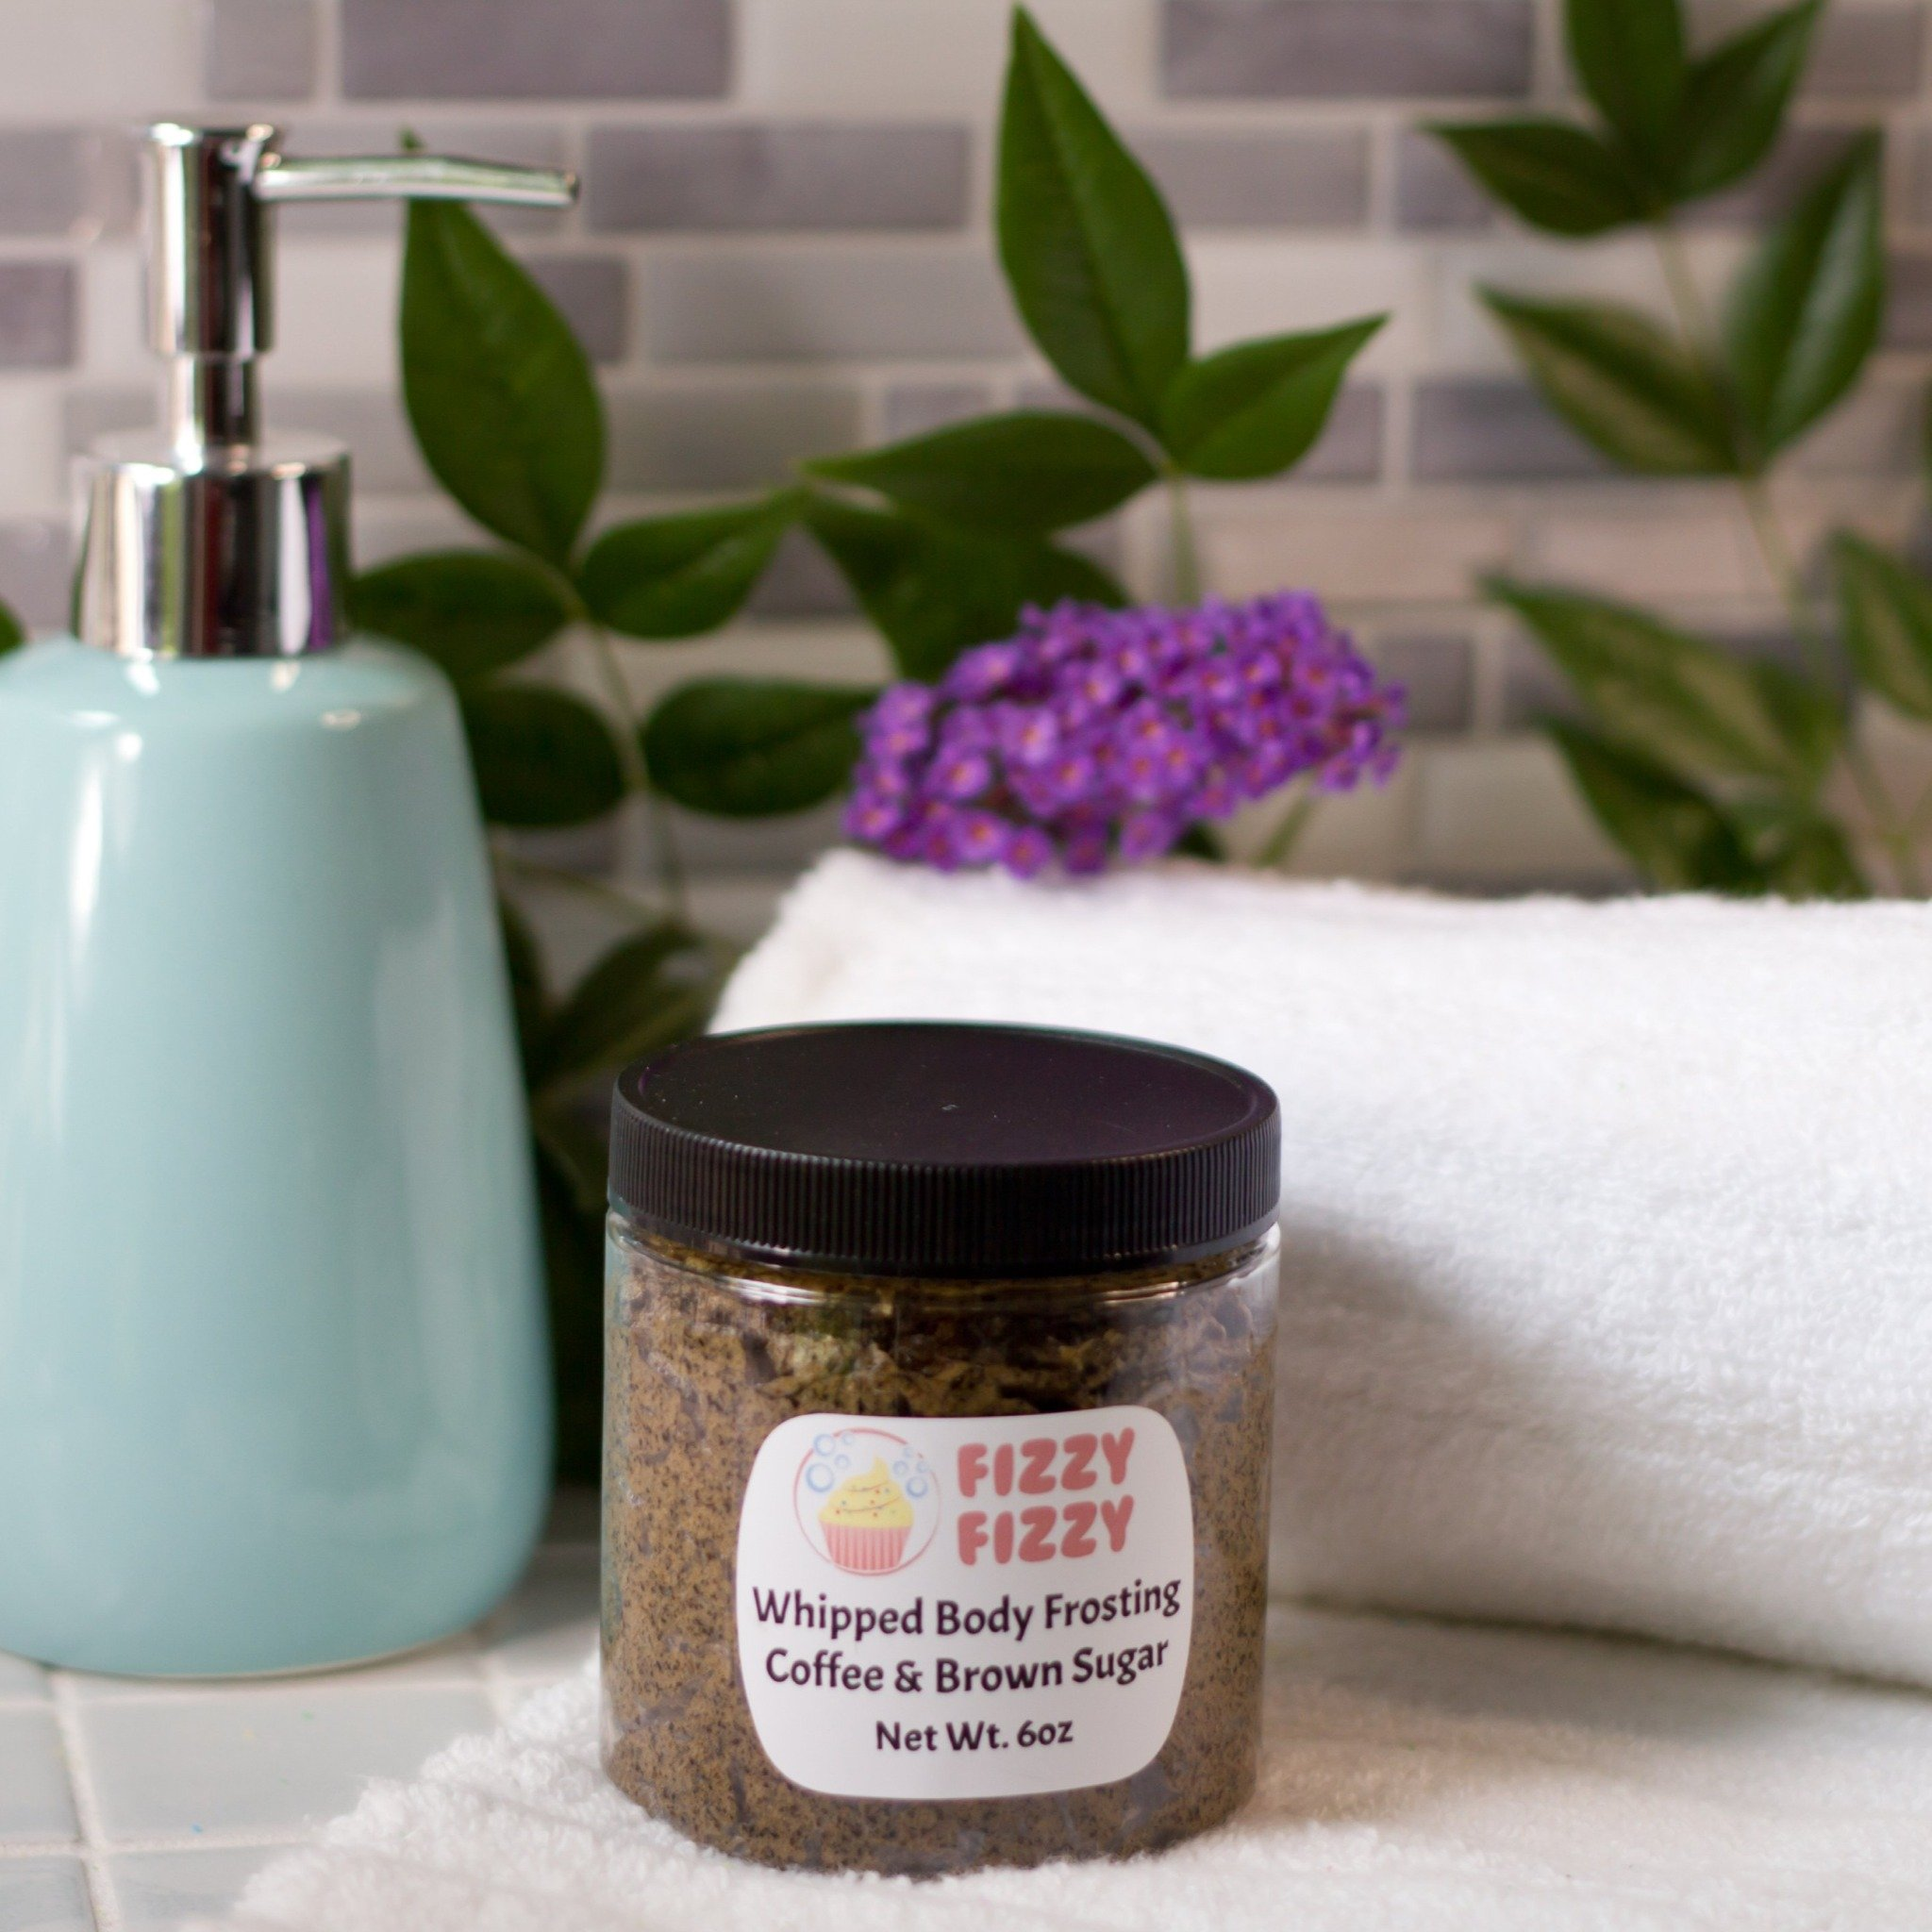 SOAPS AND BATH & SHOWER PRODUCTS